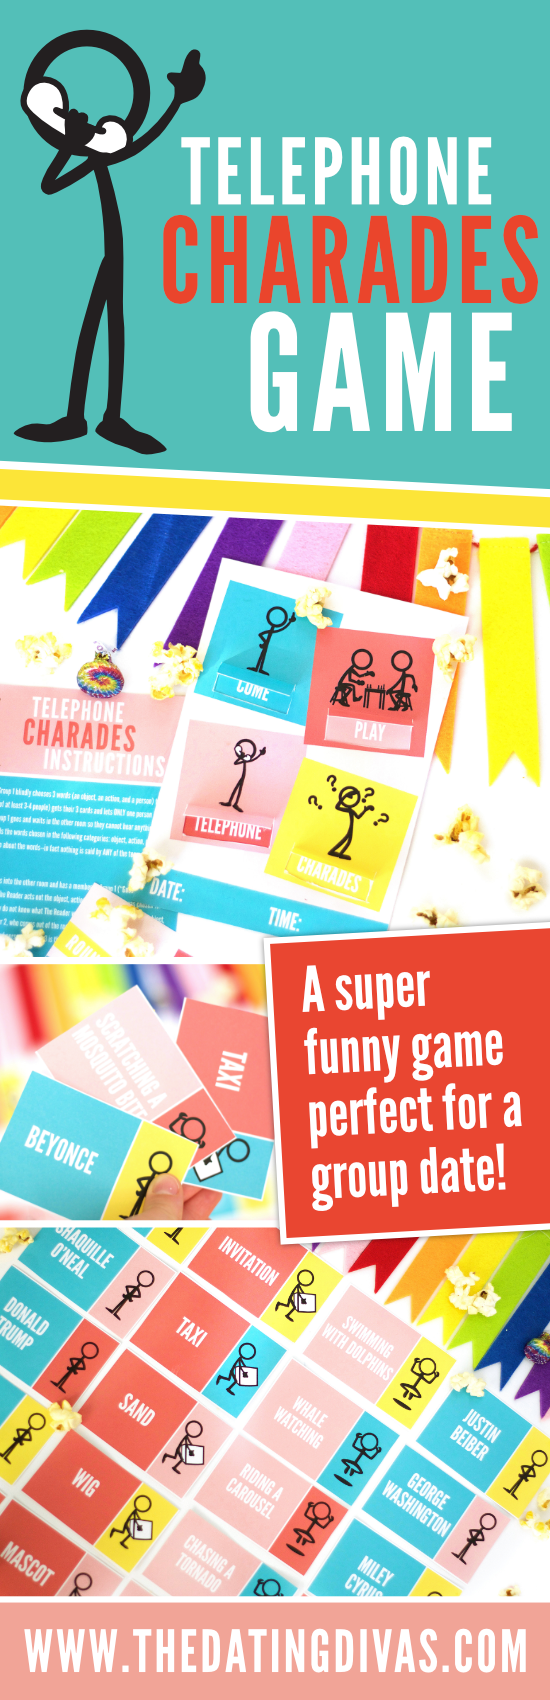 This is a great idea, it will make for a hilarious group game night!! Telephone charades is so much fun, we will all be rolling on the floor laughing! #gamenight #charadesideas #partygames #telephonecharades